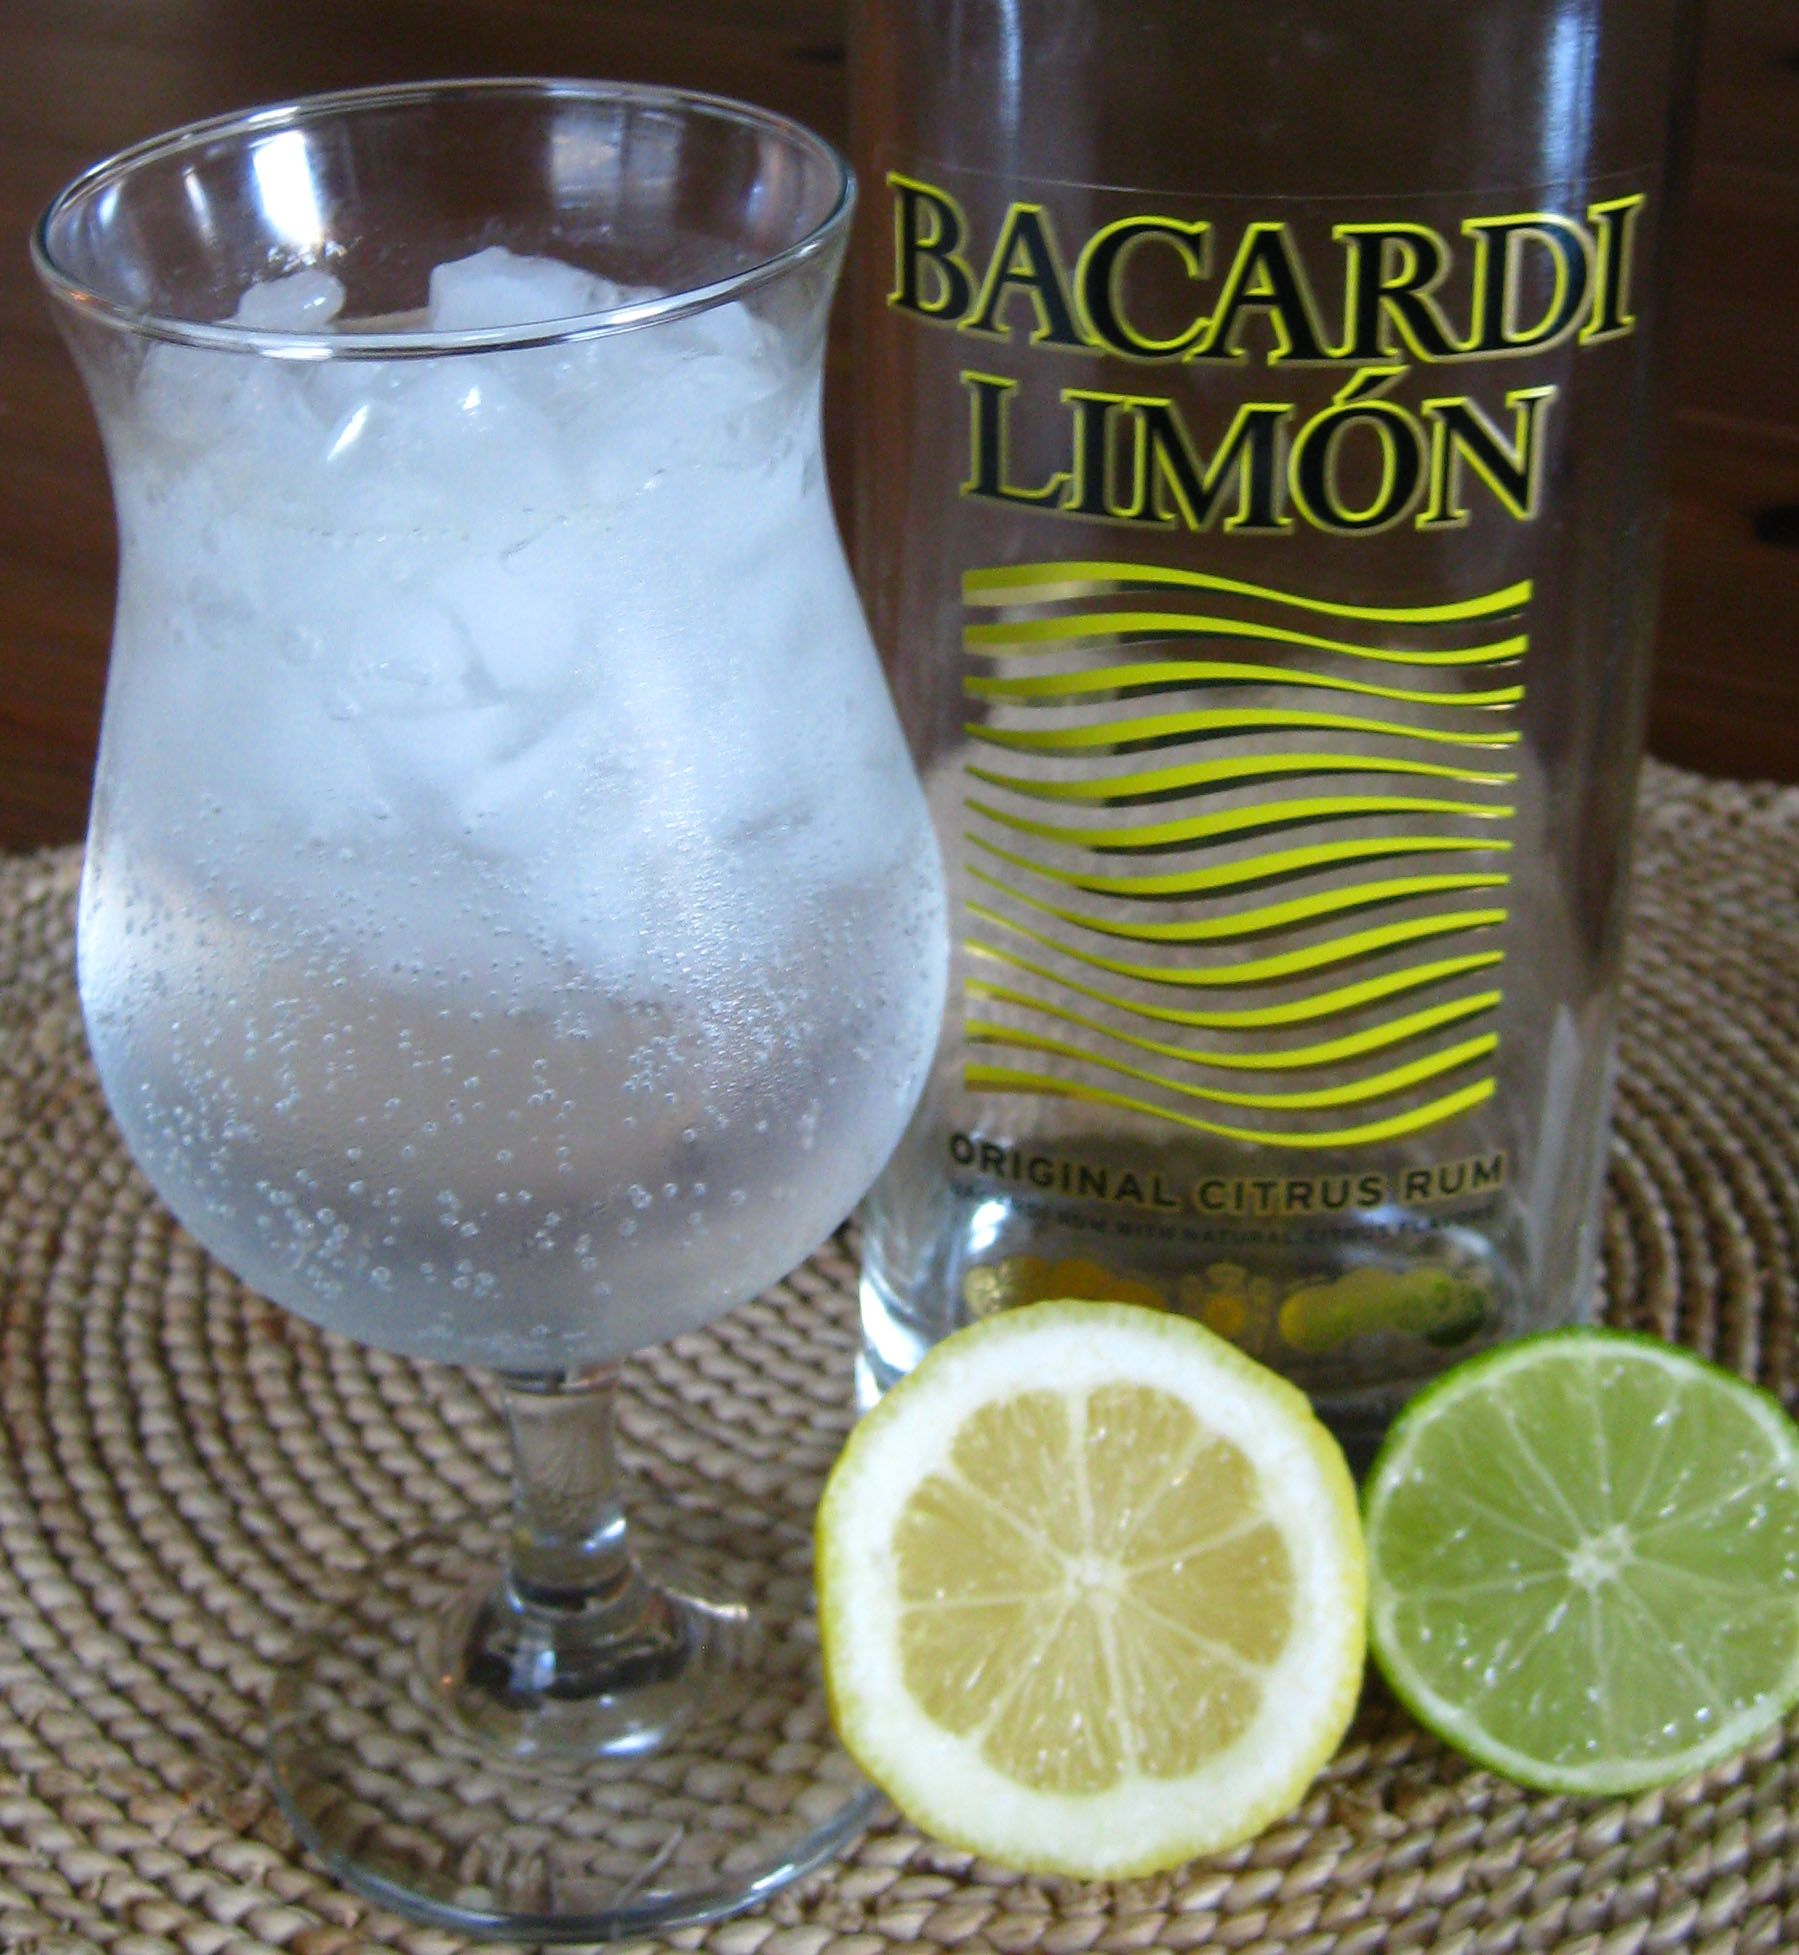 Lemon Lime Bacardi- Getting Ready For Summer Sipping